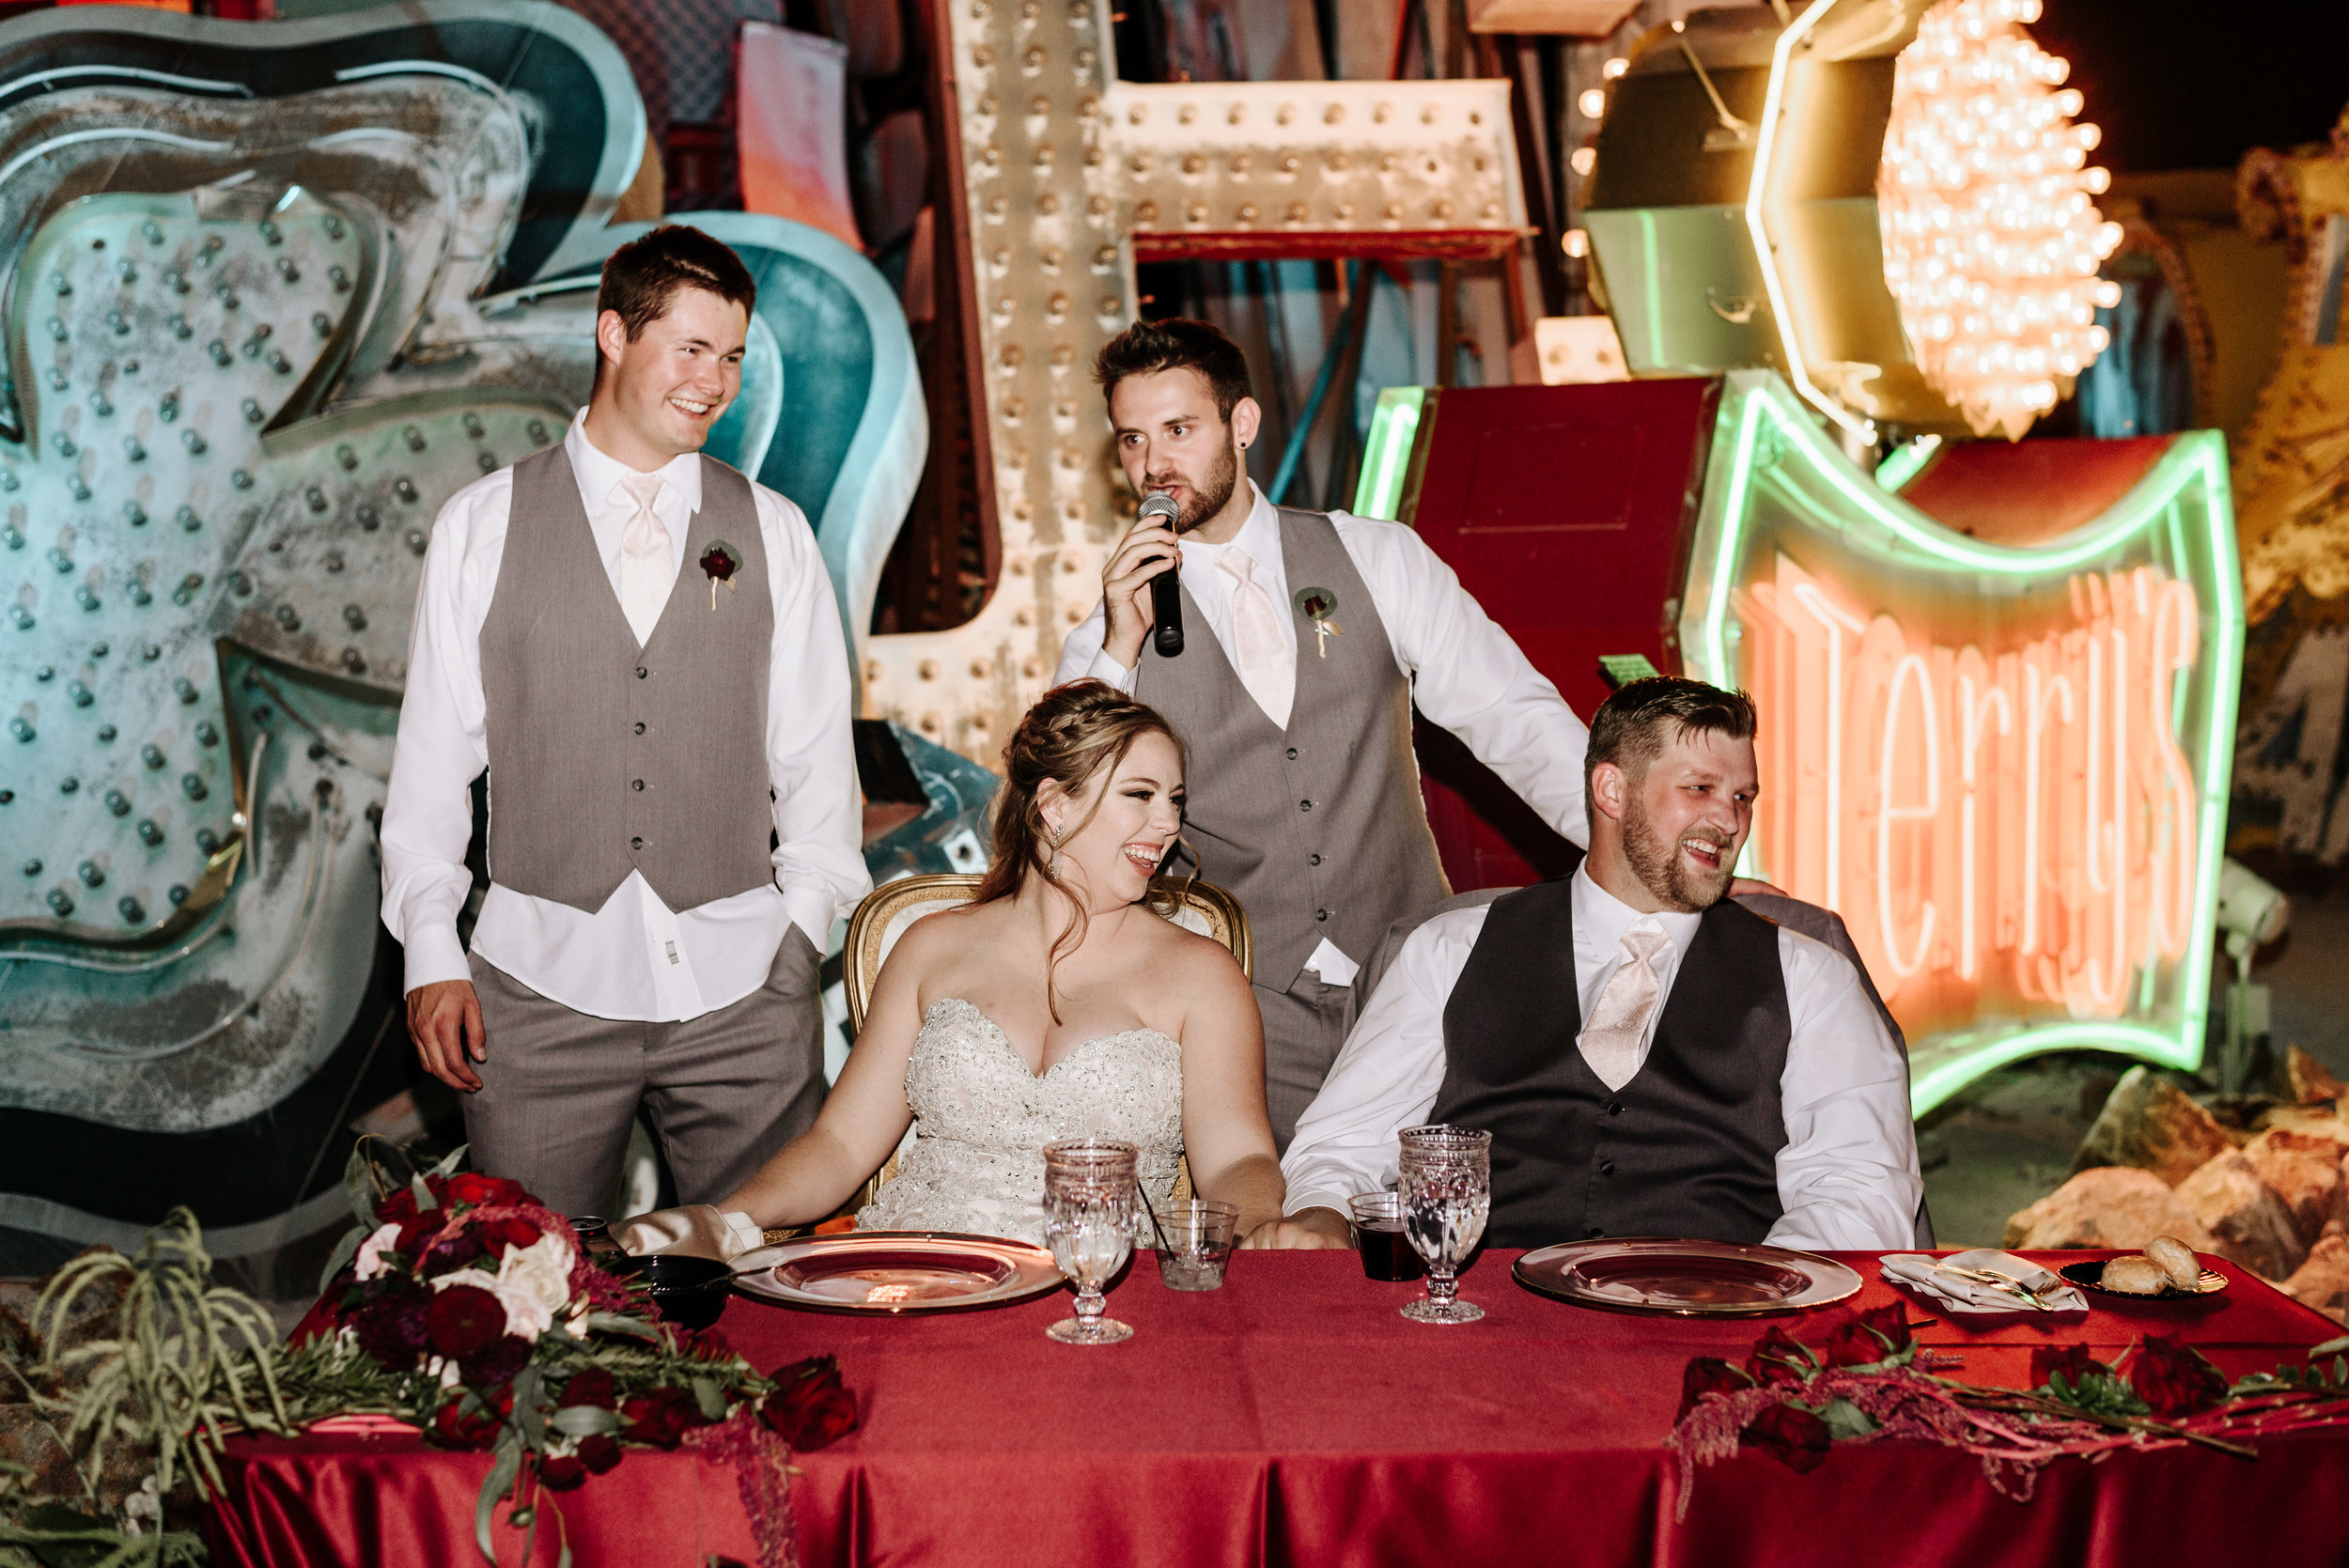 Neon-Museum-Wedding-Las-Vegas-Nevada-Golden-Nugget-Photography-by-V-Ally-and-Dan-7051.jpg